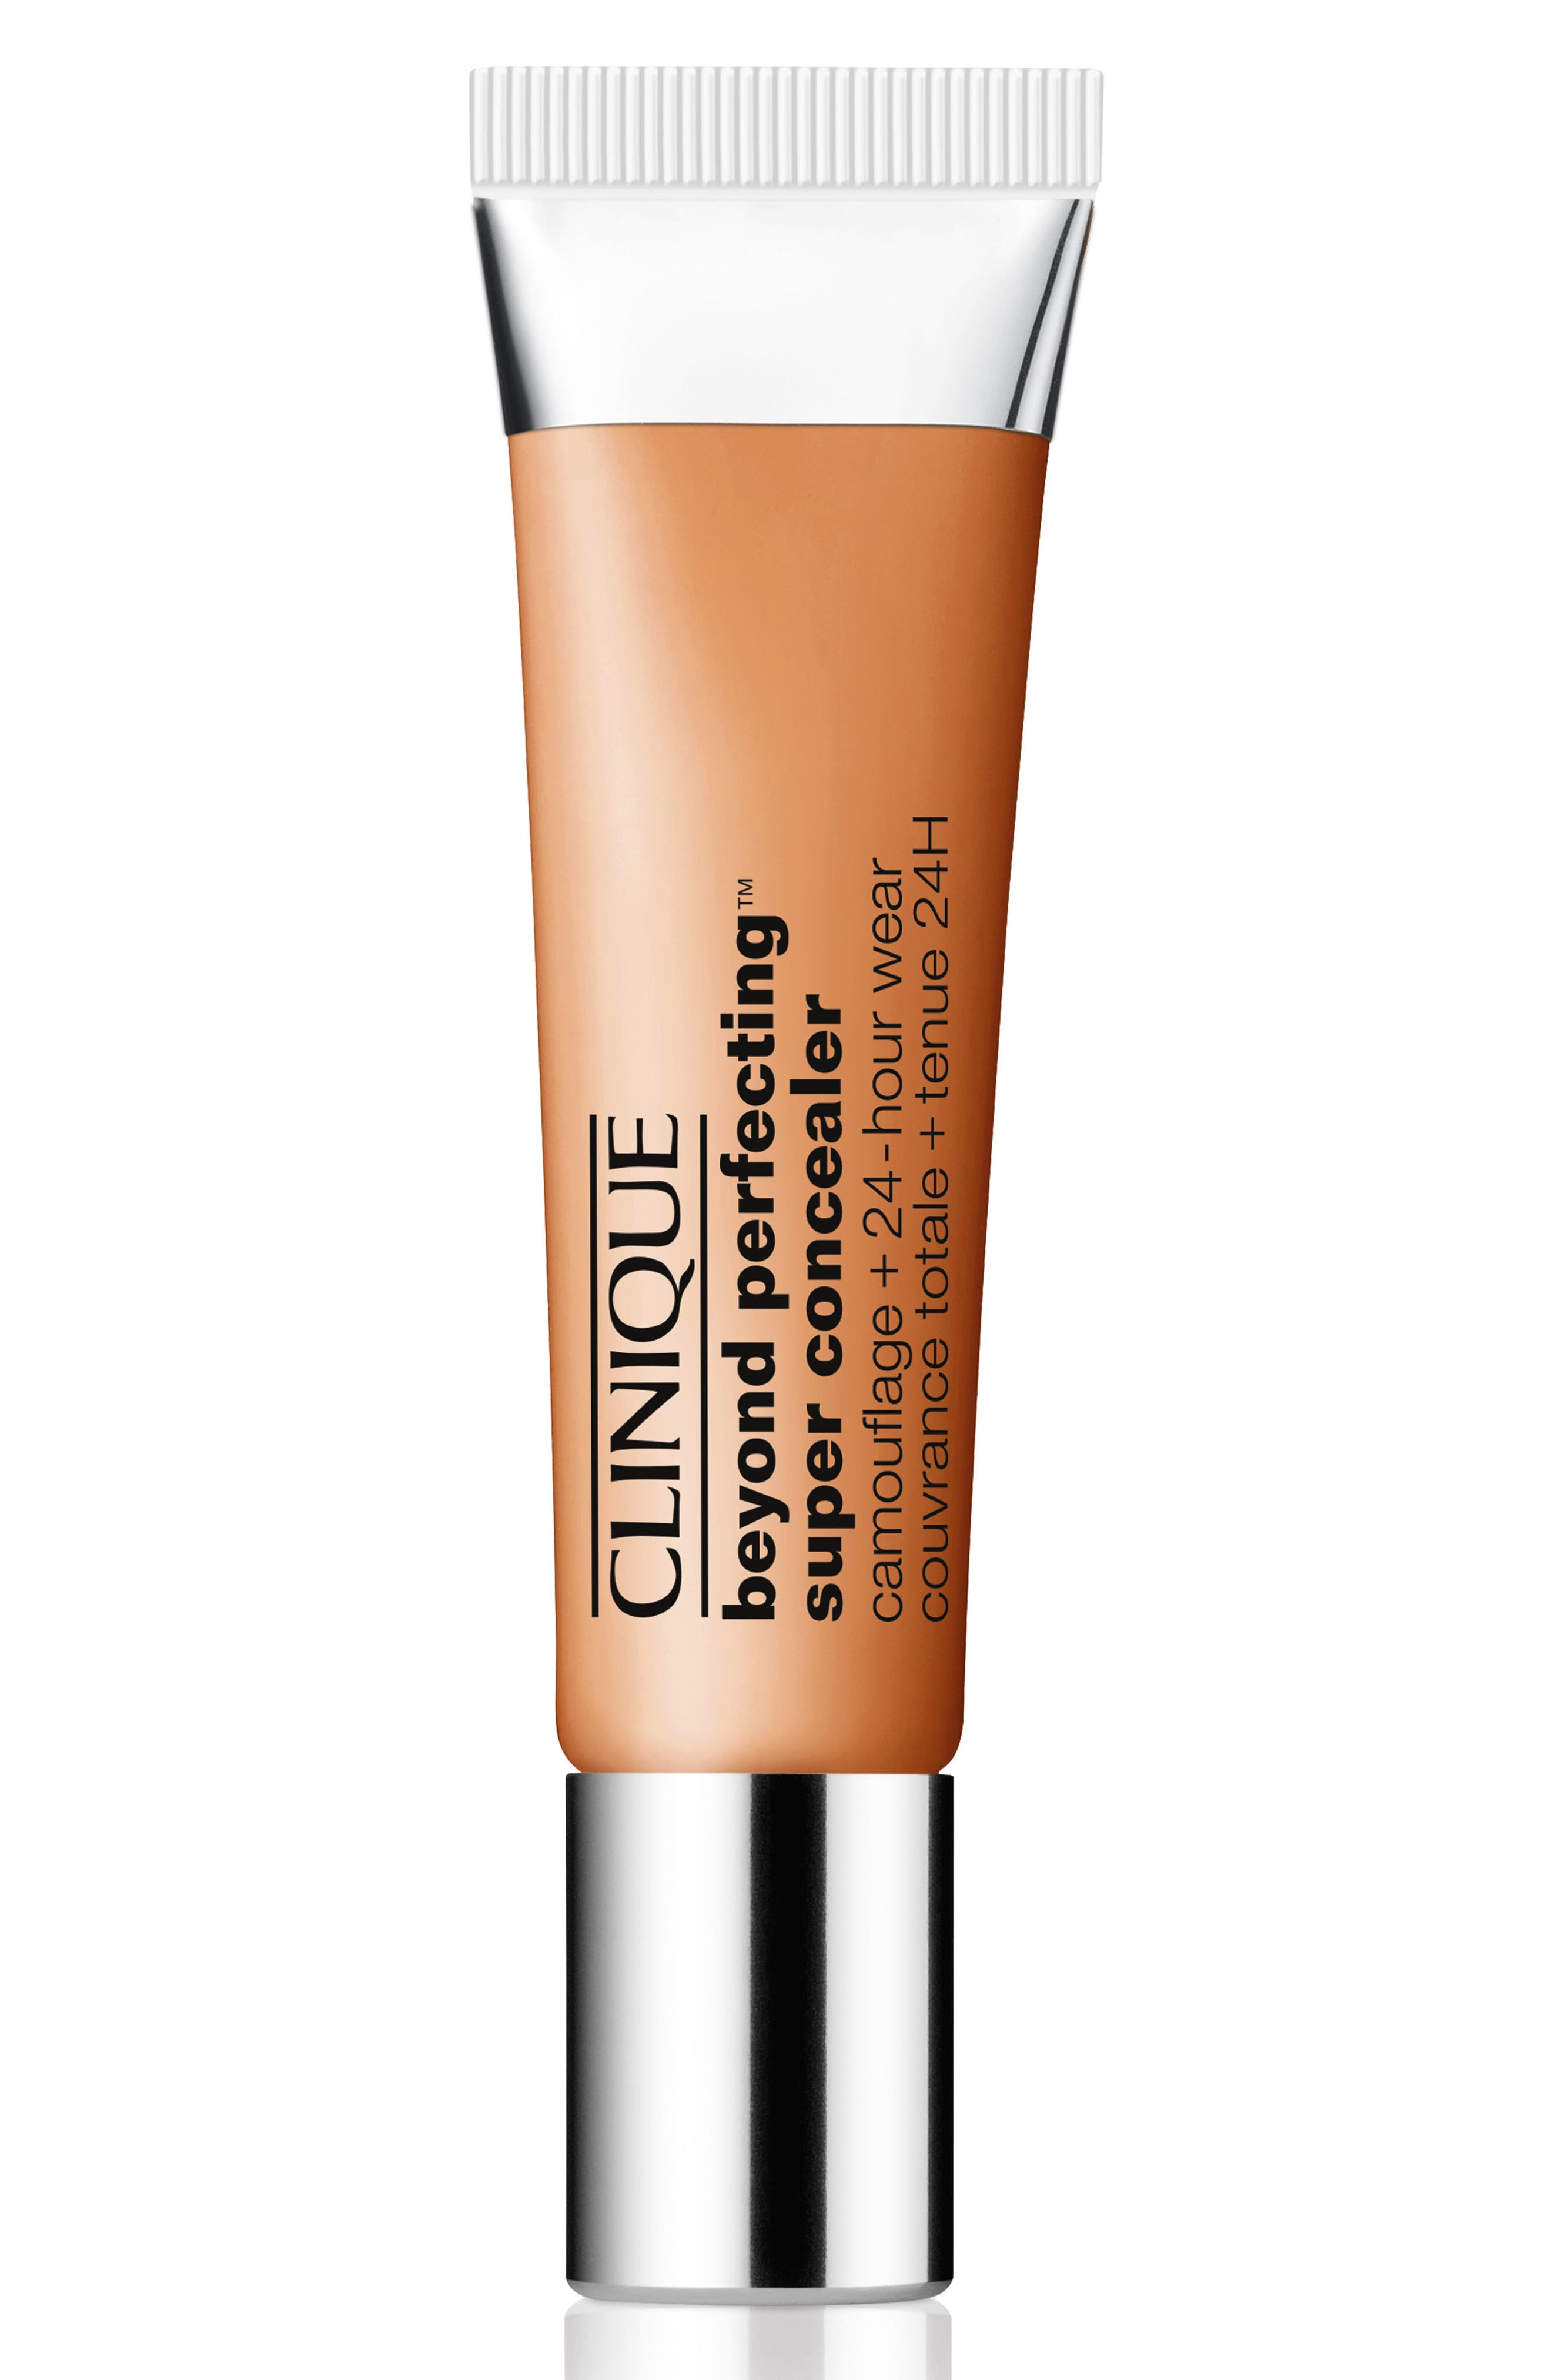 Beyond Perfecting Super Concealer Camouflage + 24-Hour Wear,                             Main thumbnail 1, color,                             Apricot Corrector